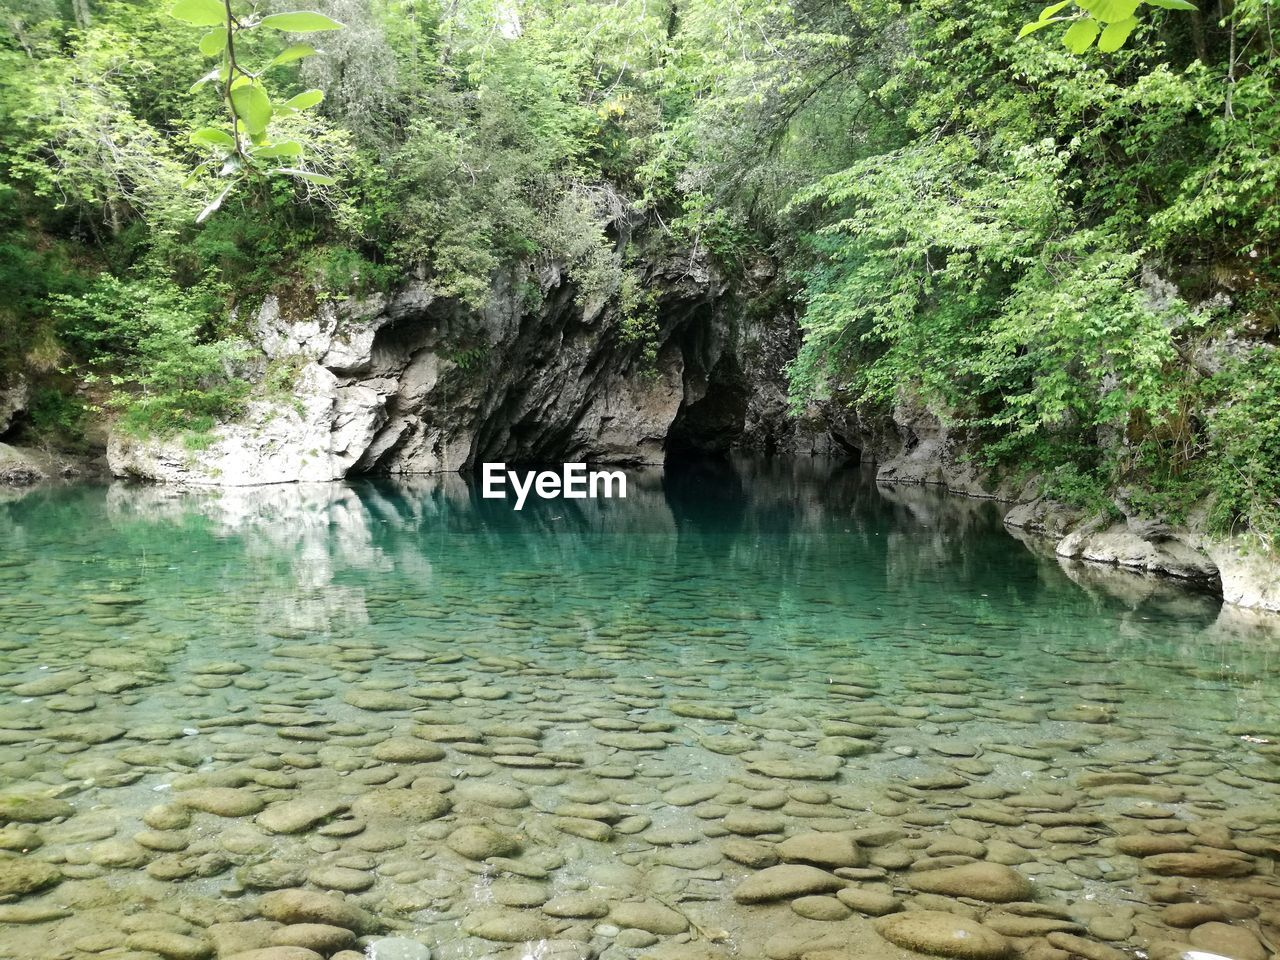 nature, rock - object, beauty in nature, water, tranquil scene, no people, tranquility, scenics, outdoors, day, tree